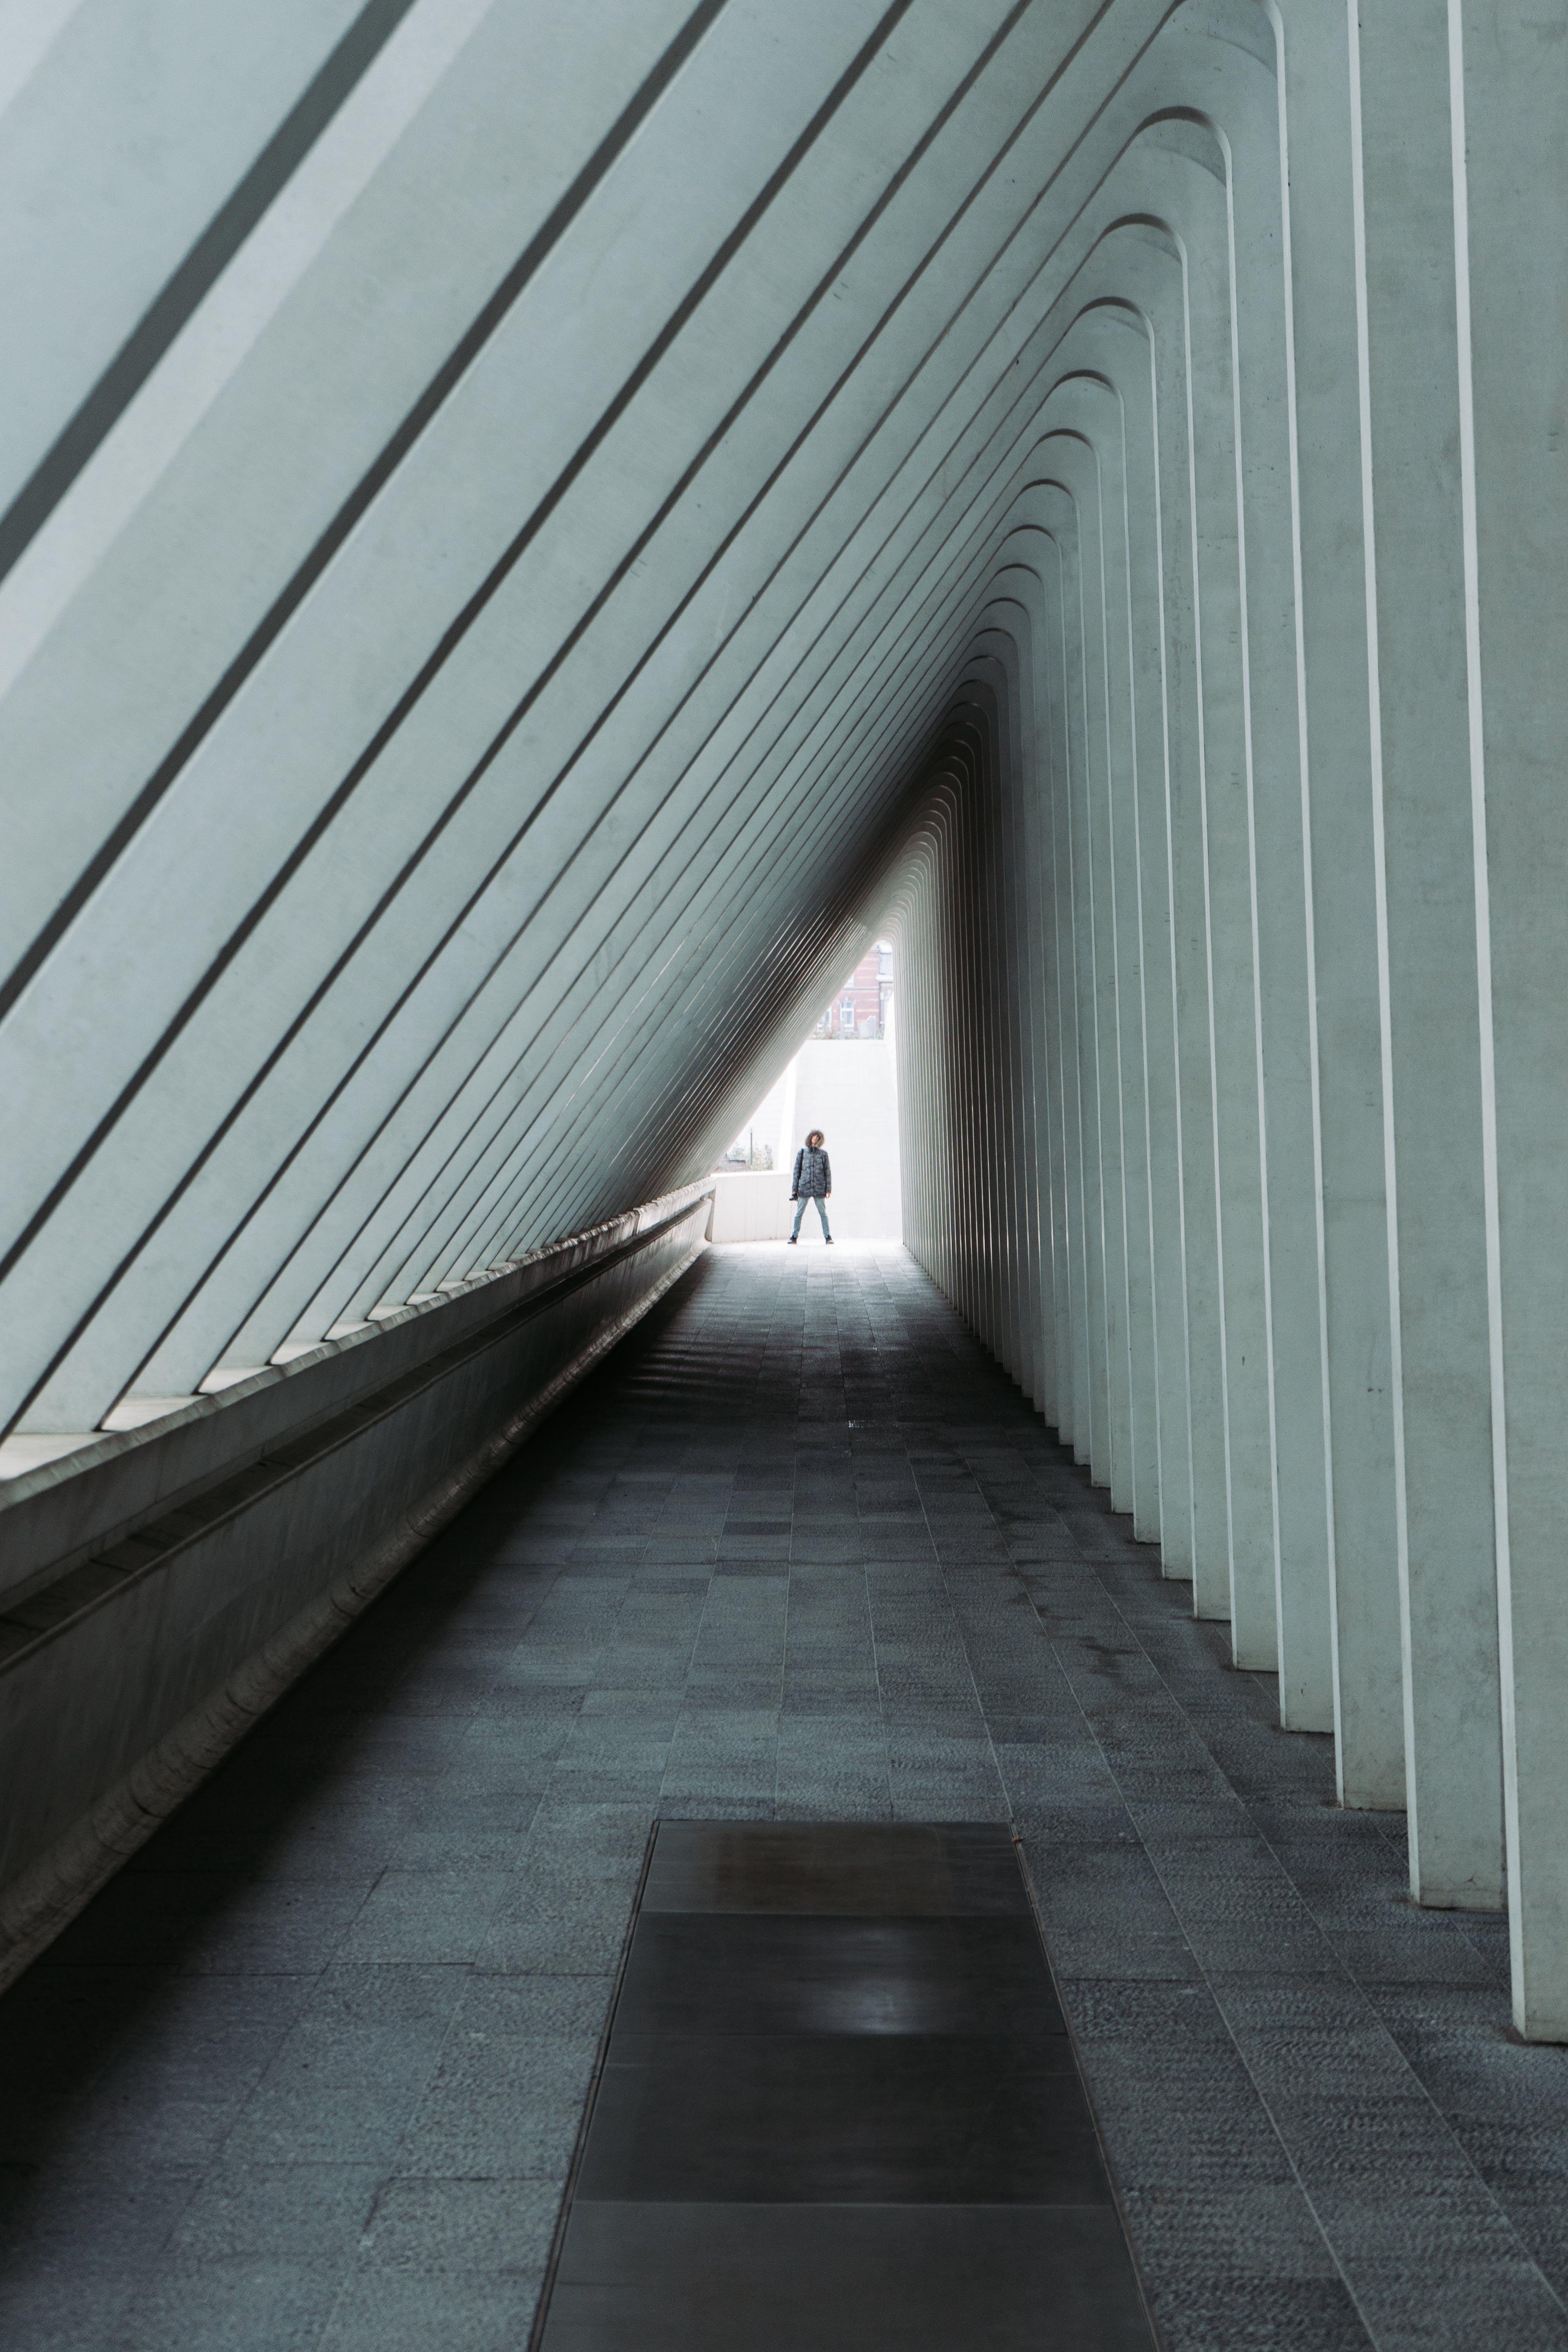 Person Standing at the End of a Hallway